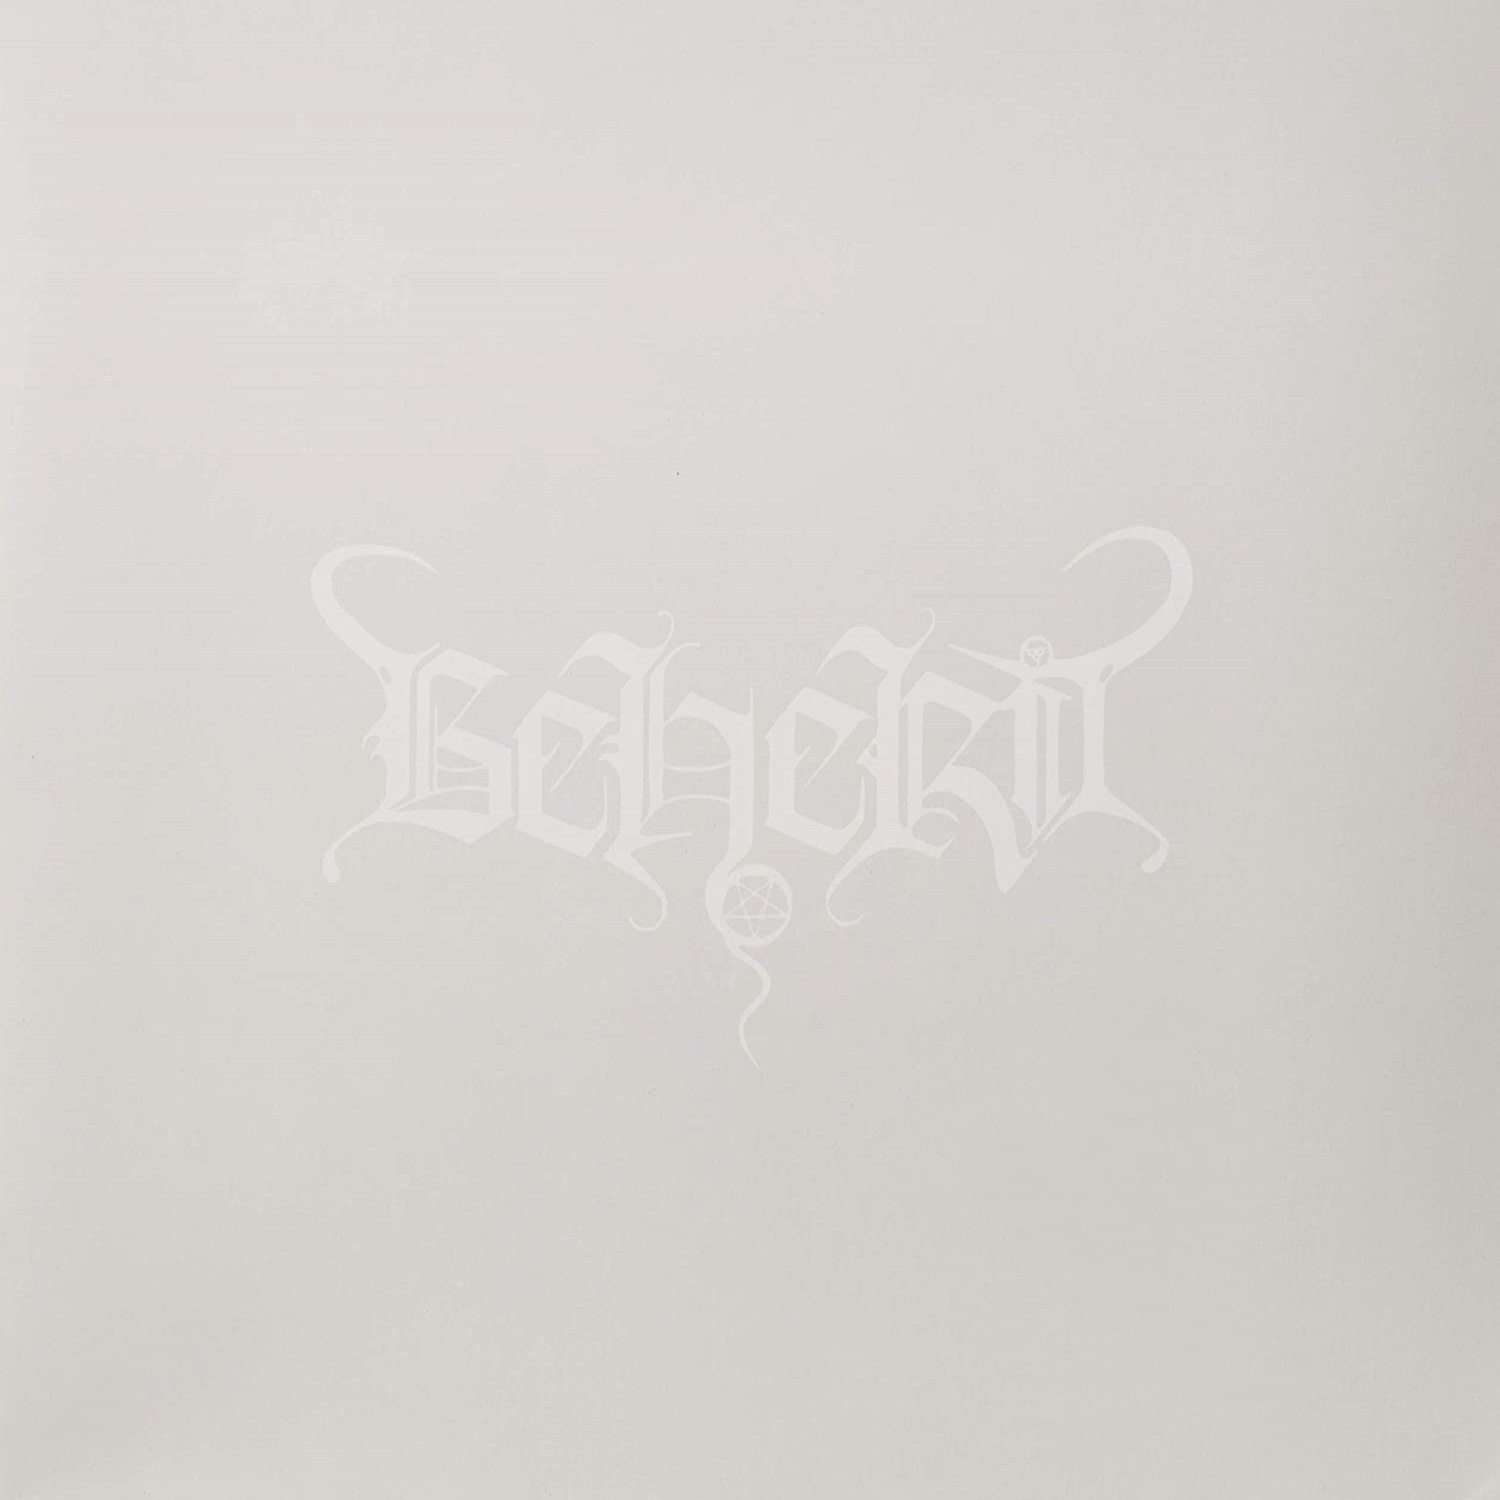 Reviews for Beherit - Electric Doom Synthesis